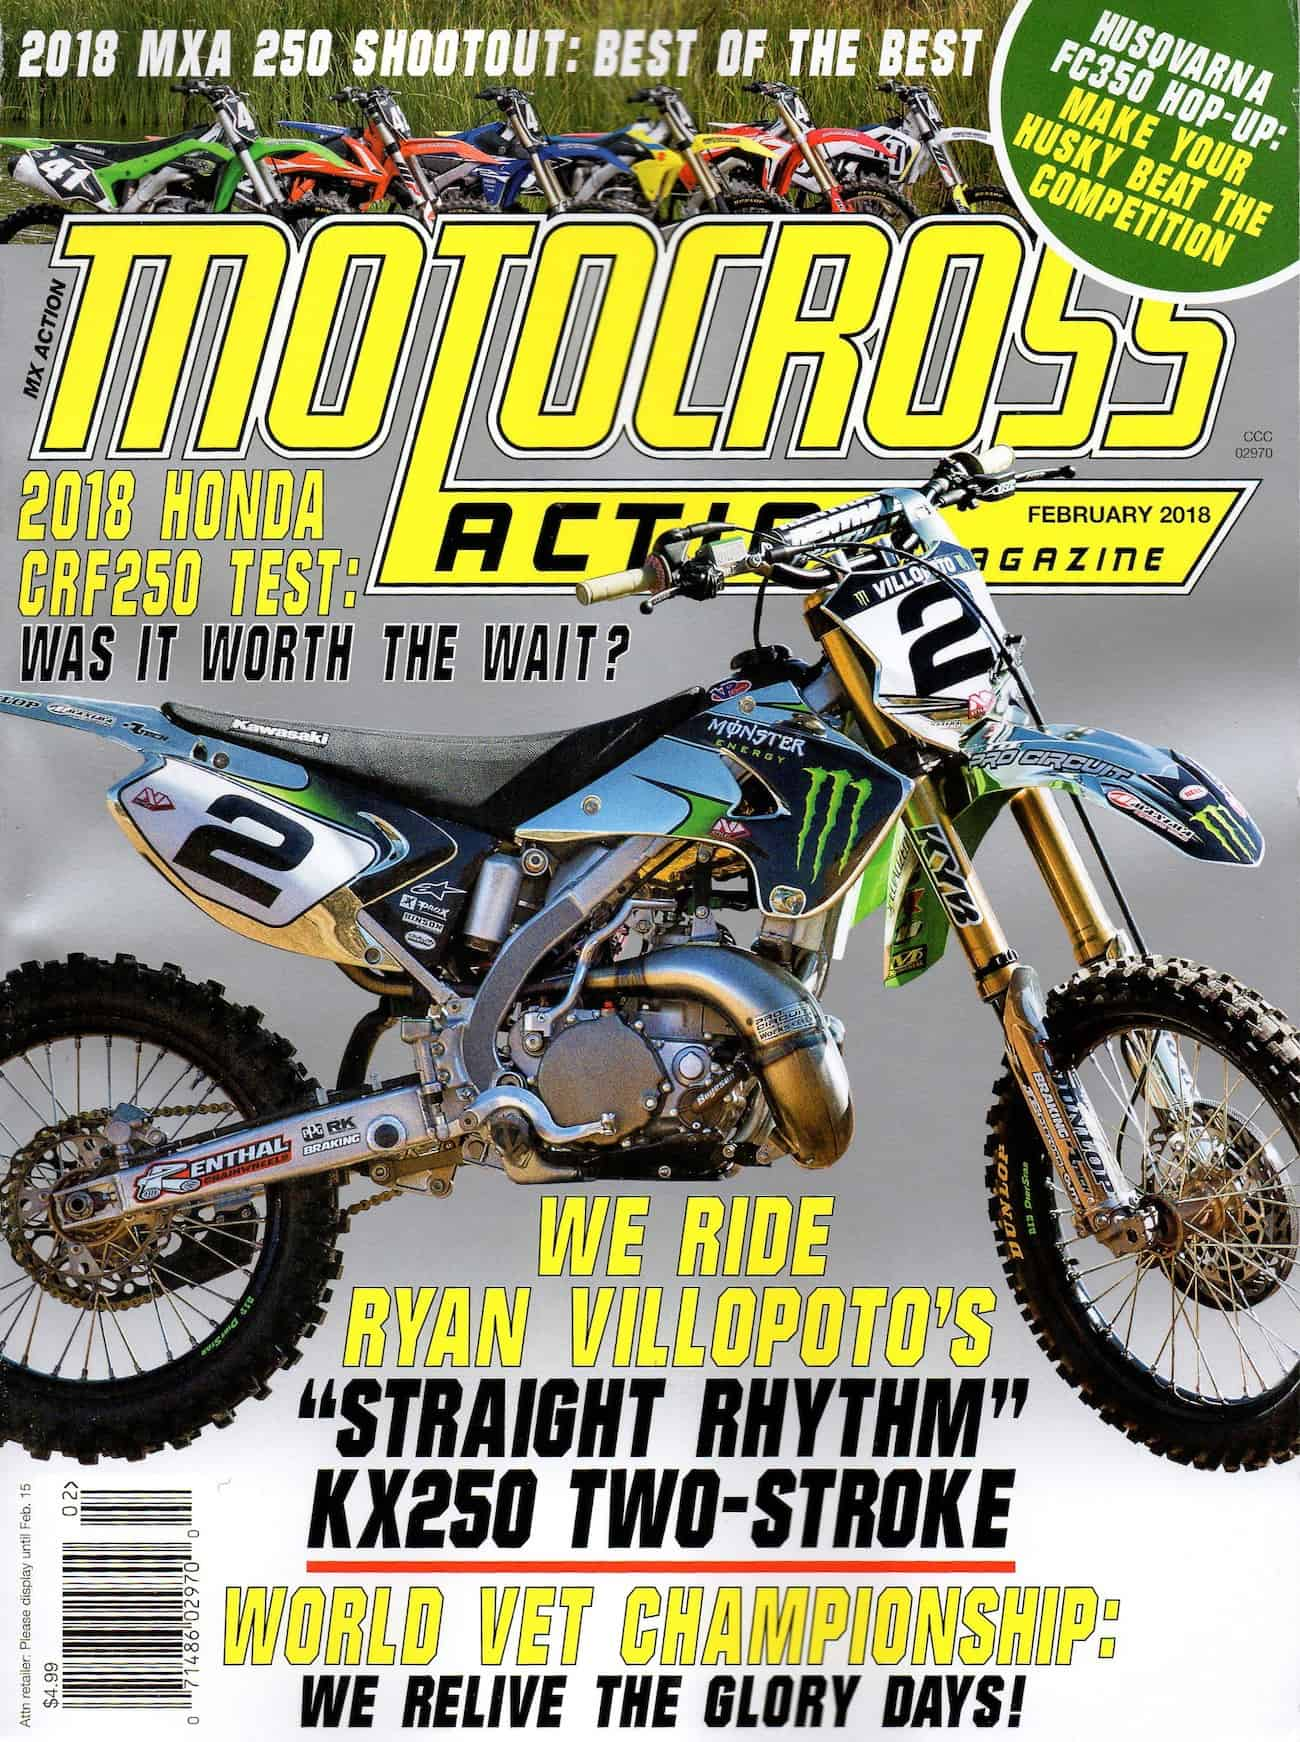 Mxa Motocross Race Test 2018 Honda Crf250 Action Magazine 2005 Crf250x Wiring Diagram Had You Subscribed To Would Have Read This Complete Bike When In Came Out Back January Click The Box Below Subscribe